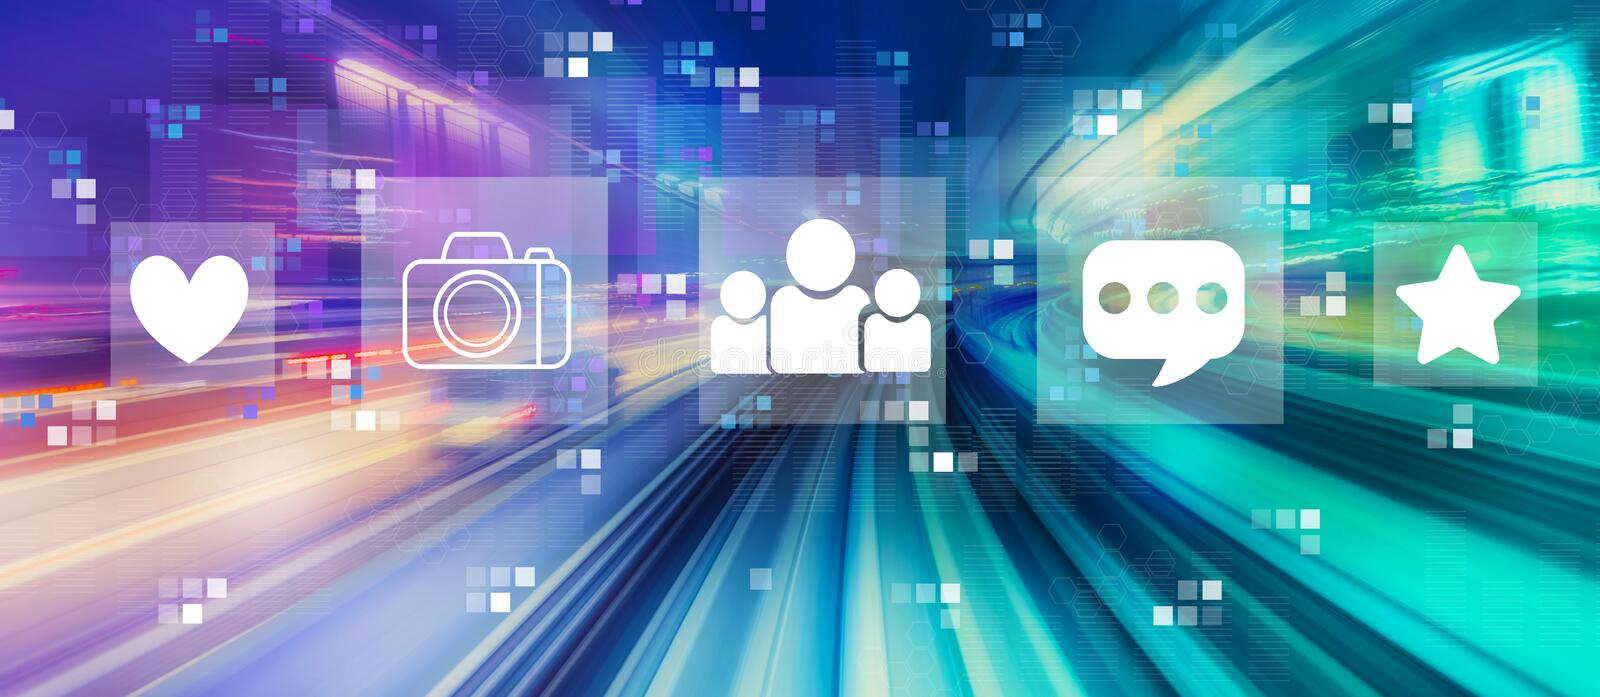 Social media with high speed motion blur stock illustration